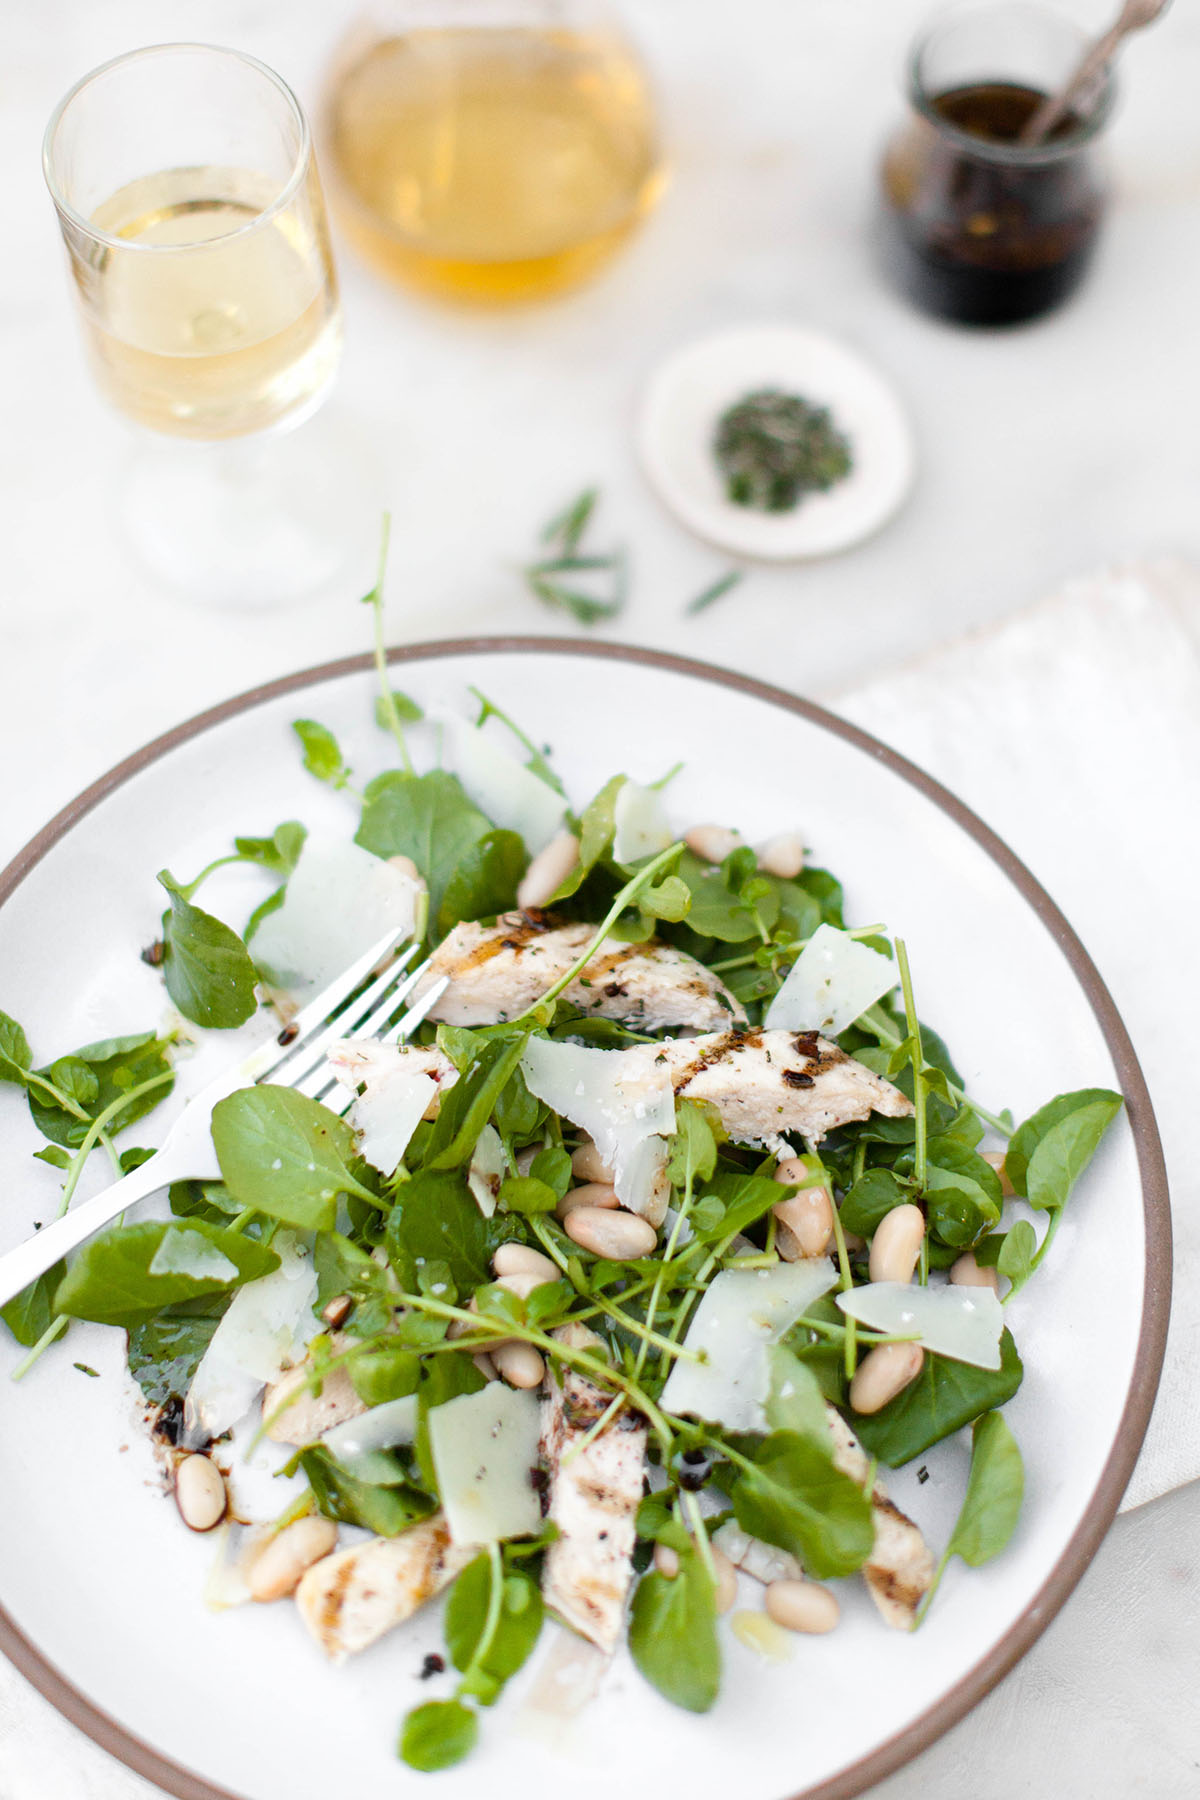 Chicken and Watercress Salad with Balsamic Dressing